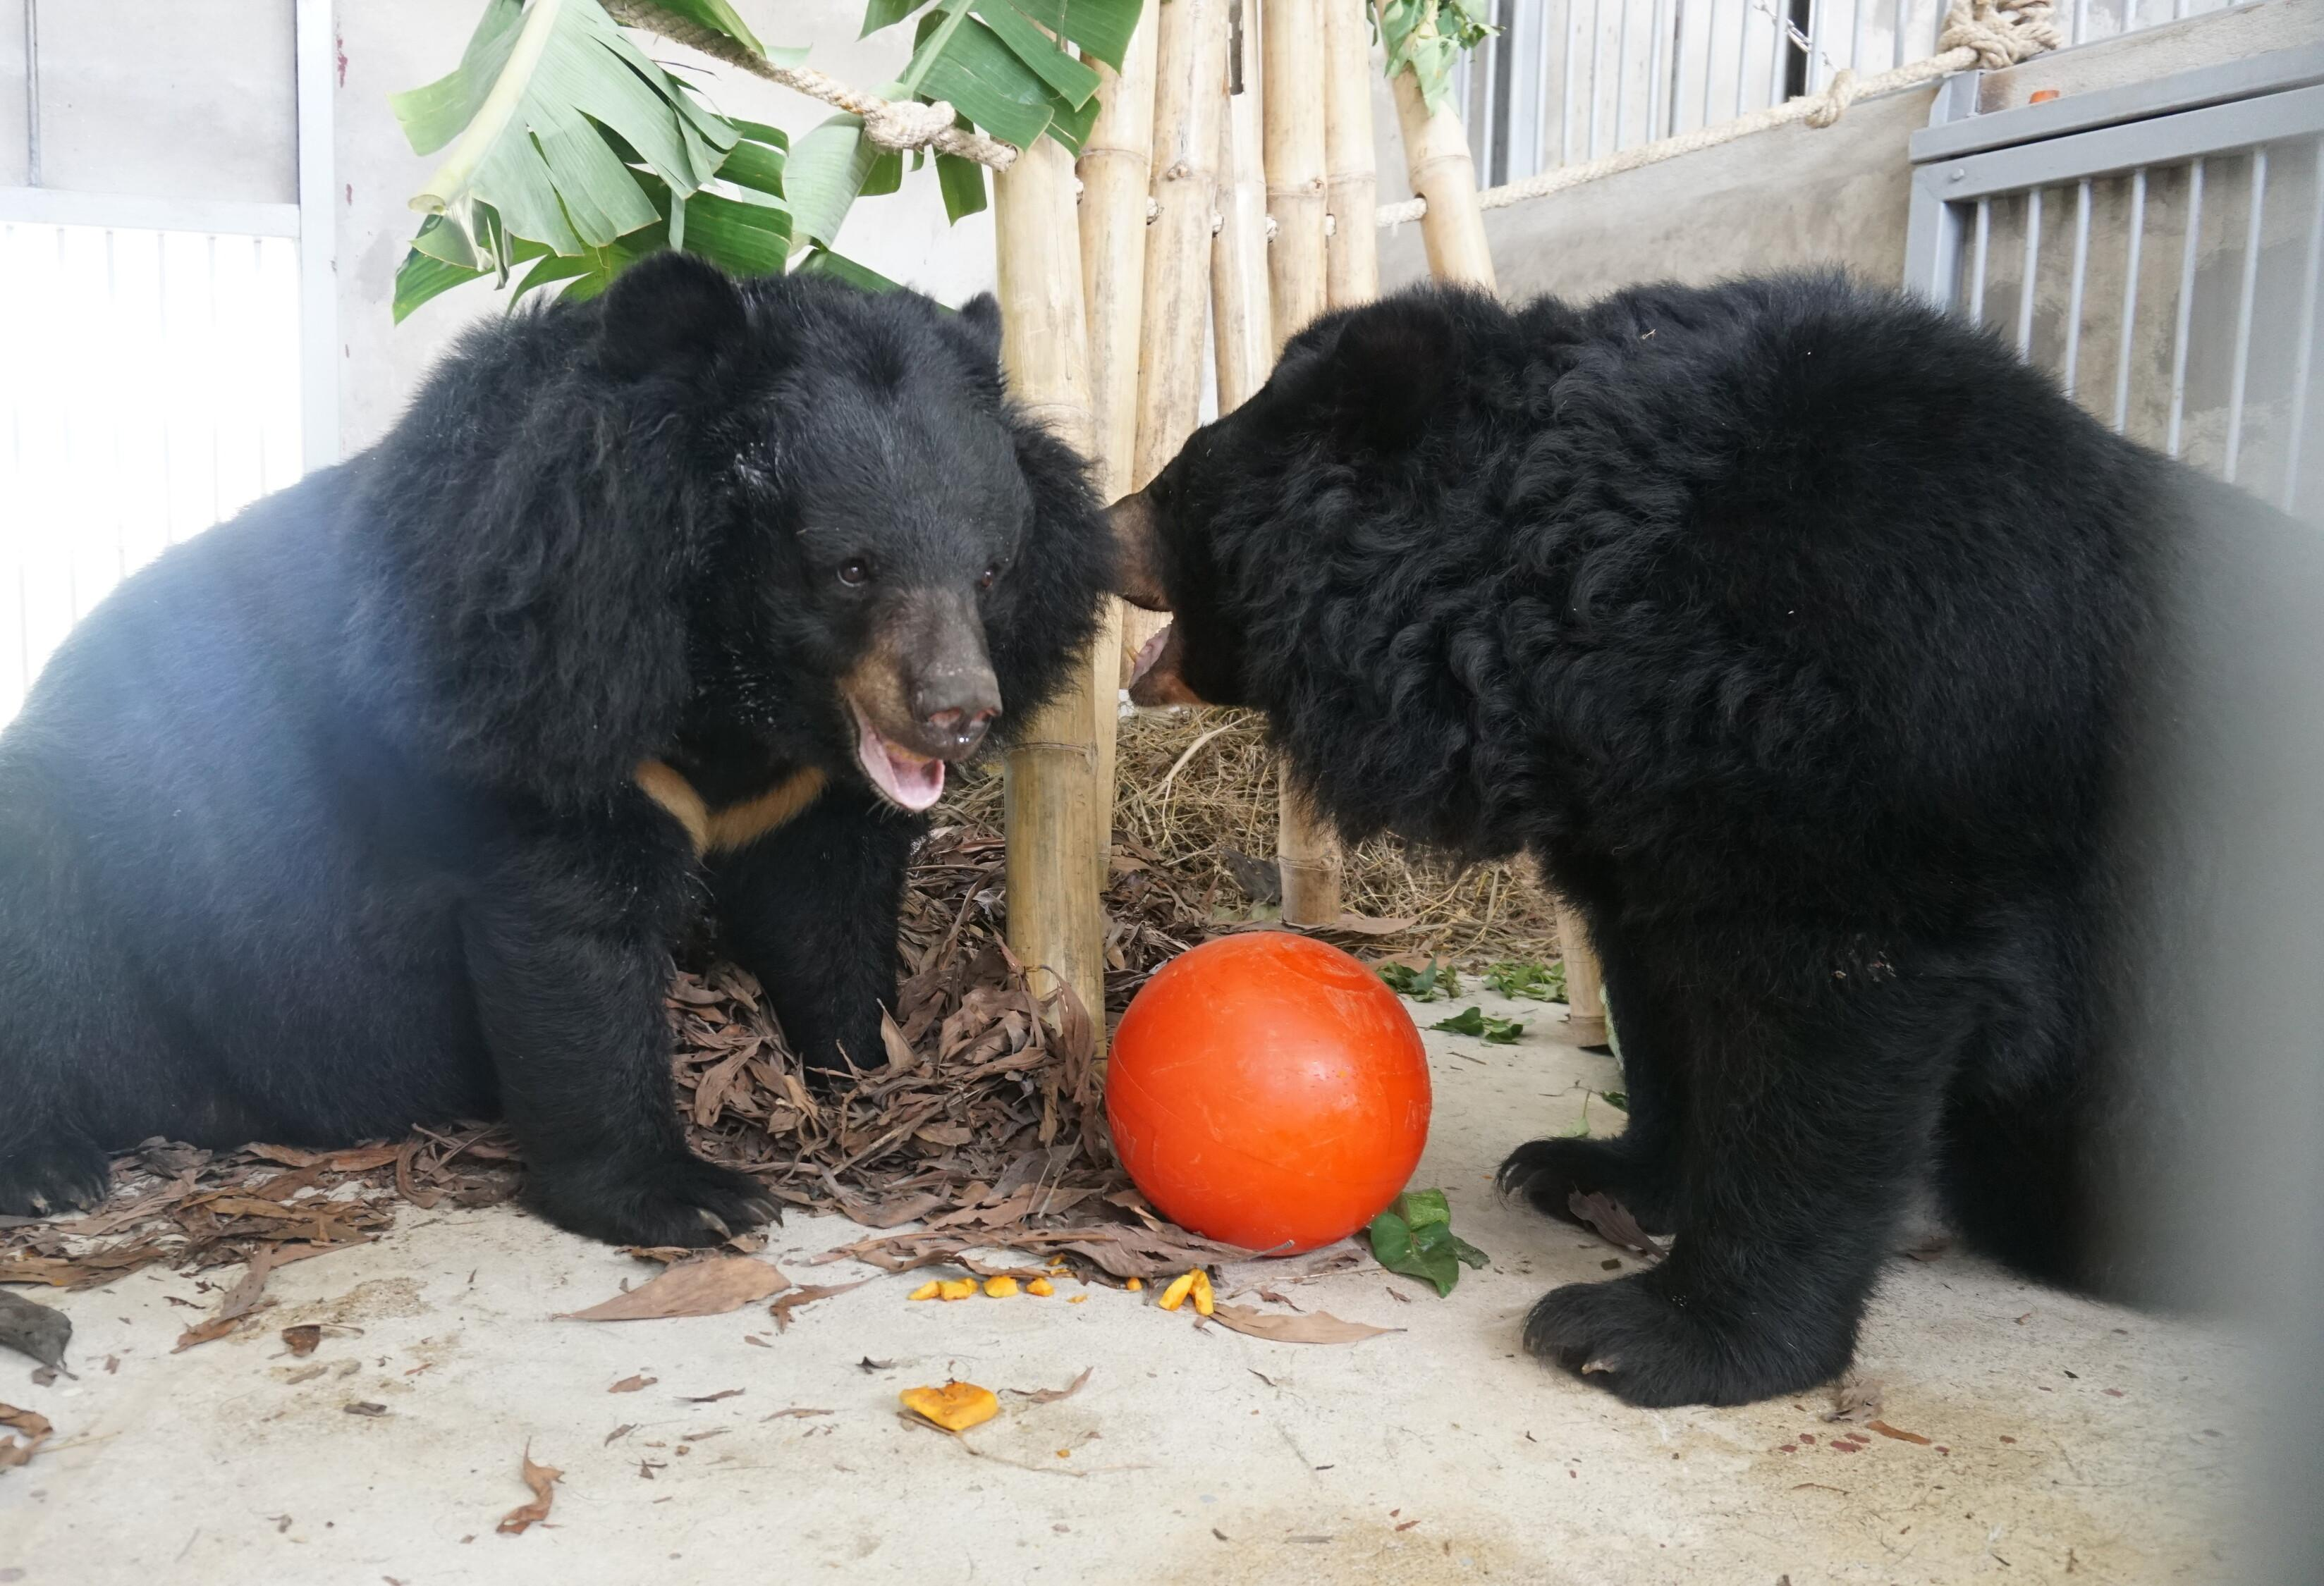 Bears Hoa Lan and Hoa Tra